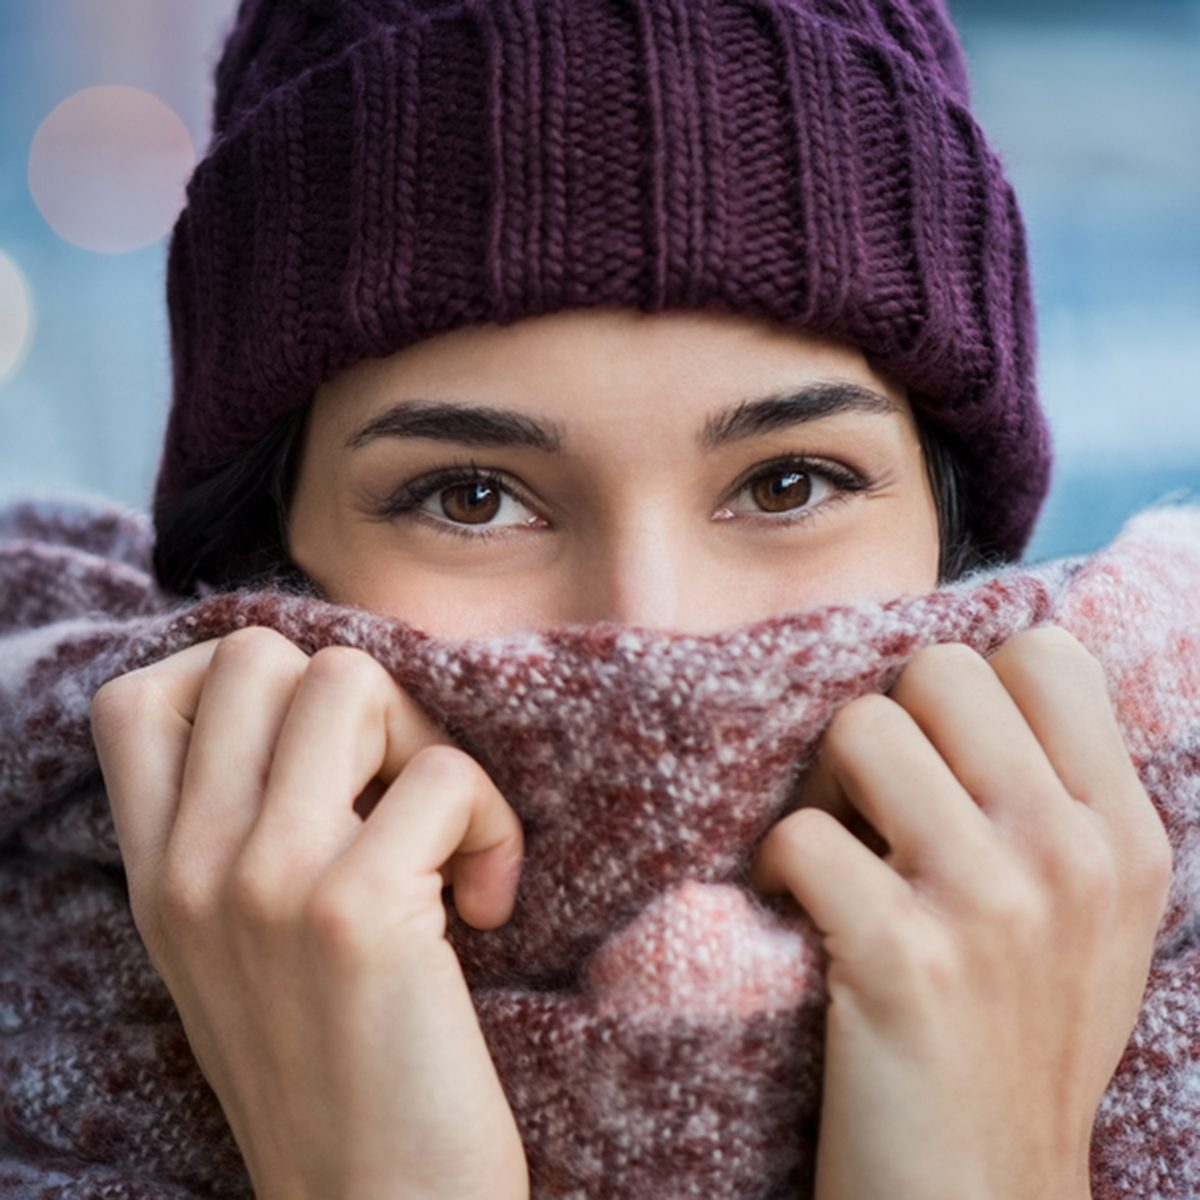 Winter portrait of young beautiful woman covering face with woolen scarf.